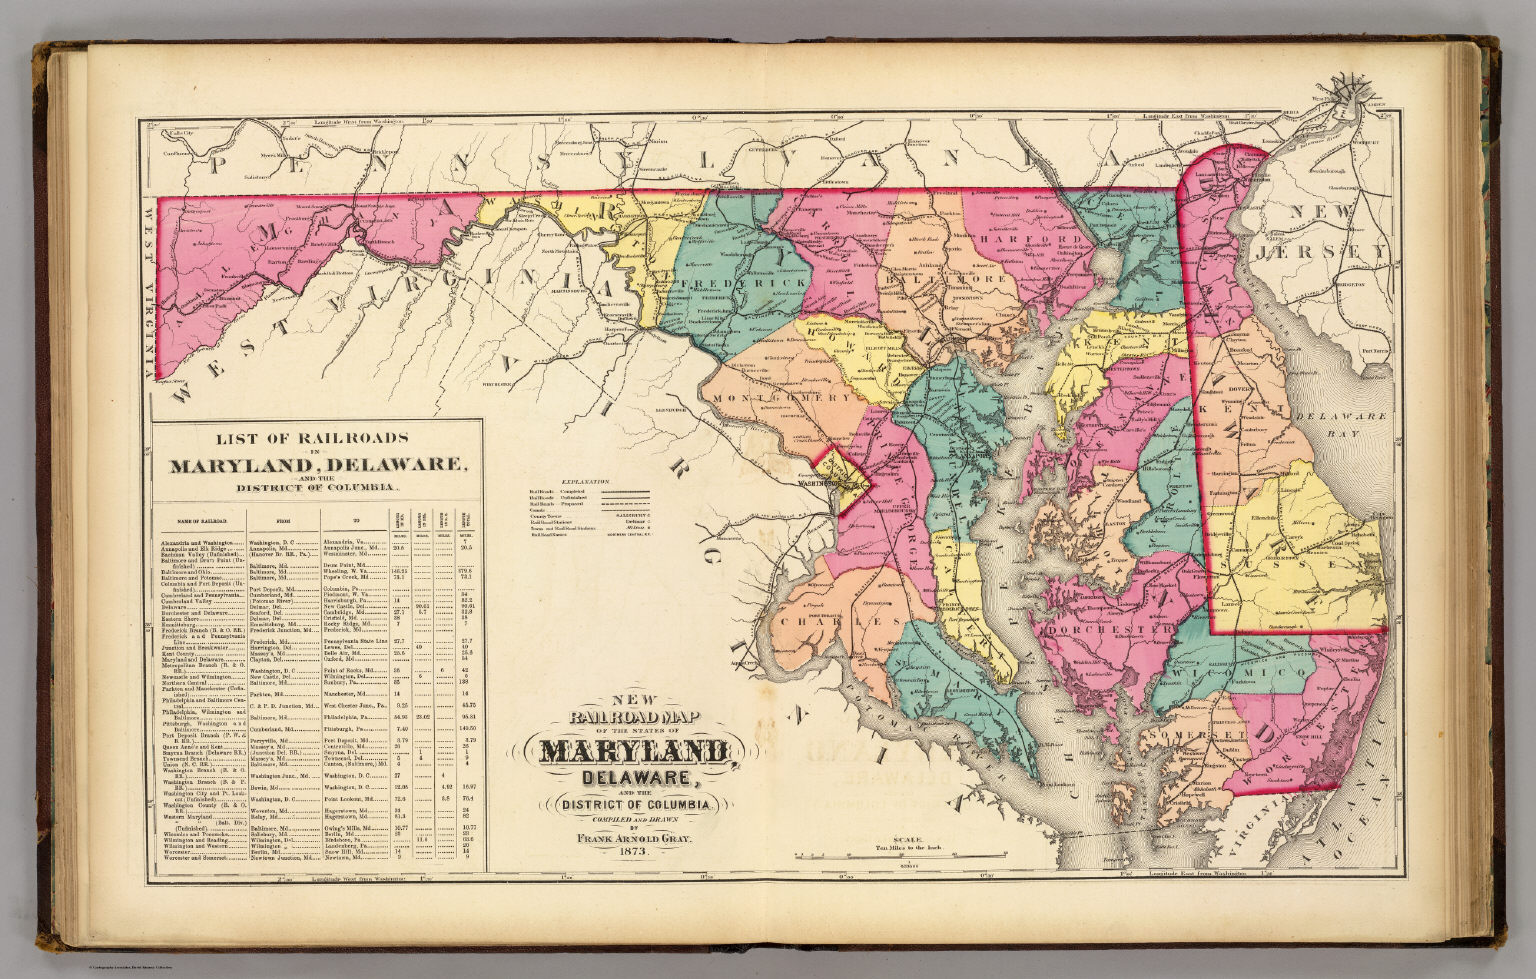 New railroad map of the states of Maryland  Delaware    District of     New railroad map of the states of Maryland  Delaware    District of  Columbia    Gray  Frank Arnold   1873